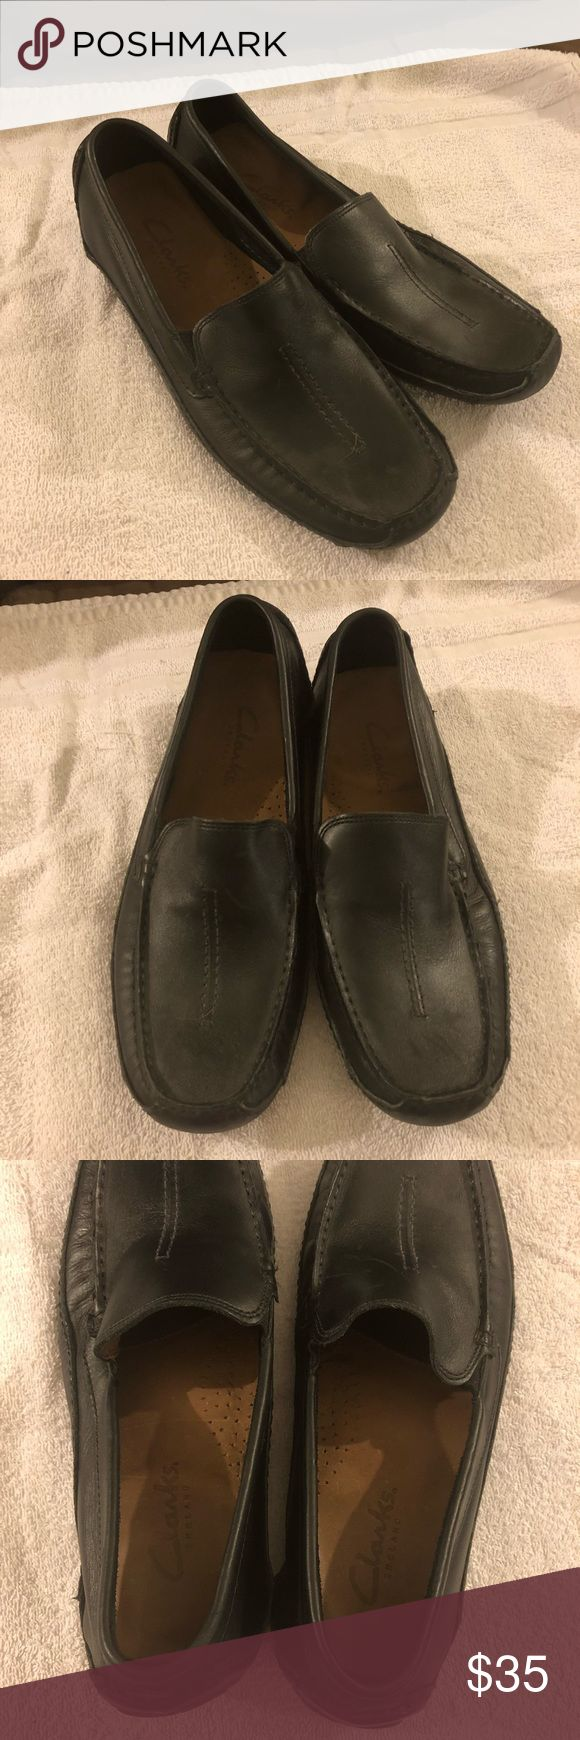 Clarks England Black Driving Loafers 10M Clarks England Black Driving Loafers Size 10M! Like new! Worn once! Beautiful shoes!  Please make reasonable offers and bundle! Ask questions :) Clarks Shoes Loafers & Slip-Ons